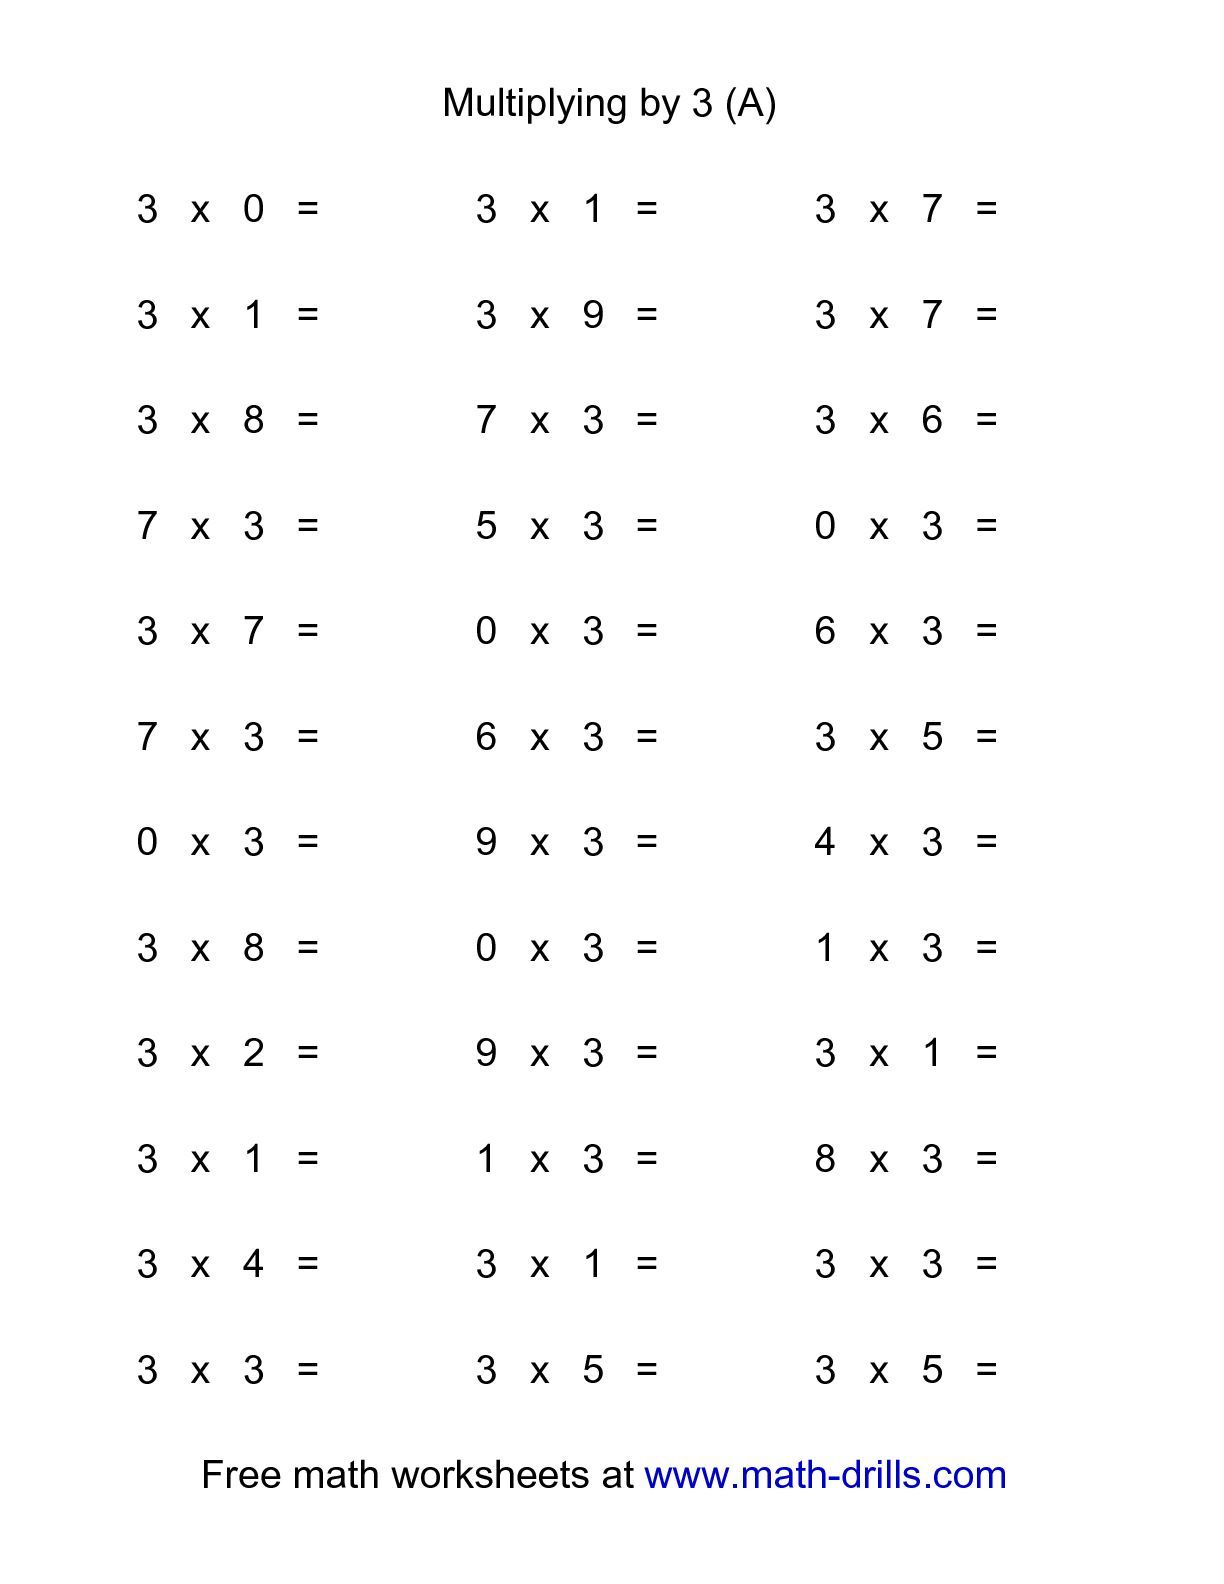 36 Horizontal Multiplication Facts Questions 3 By 0 9 A